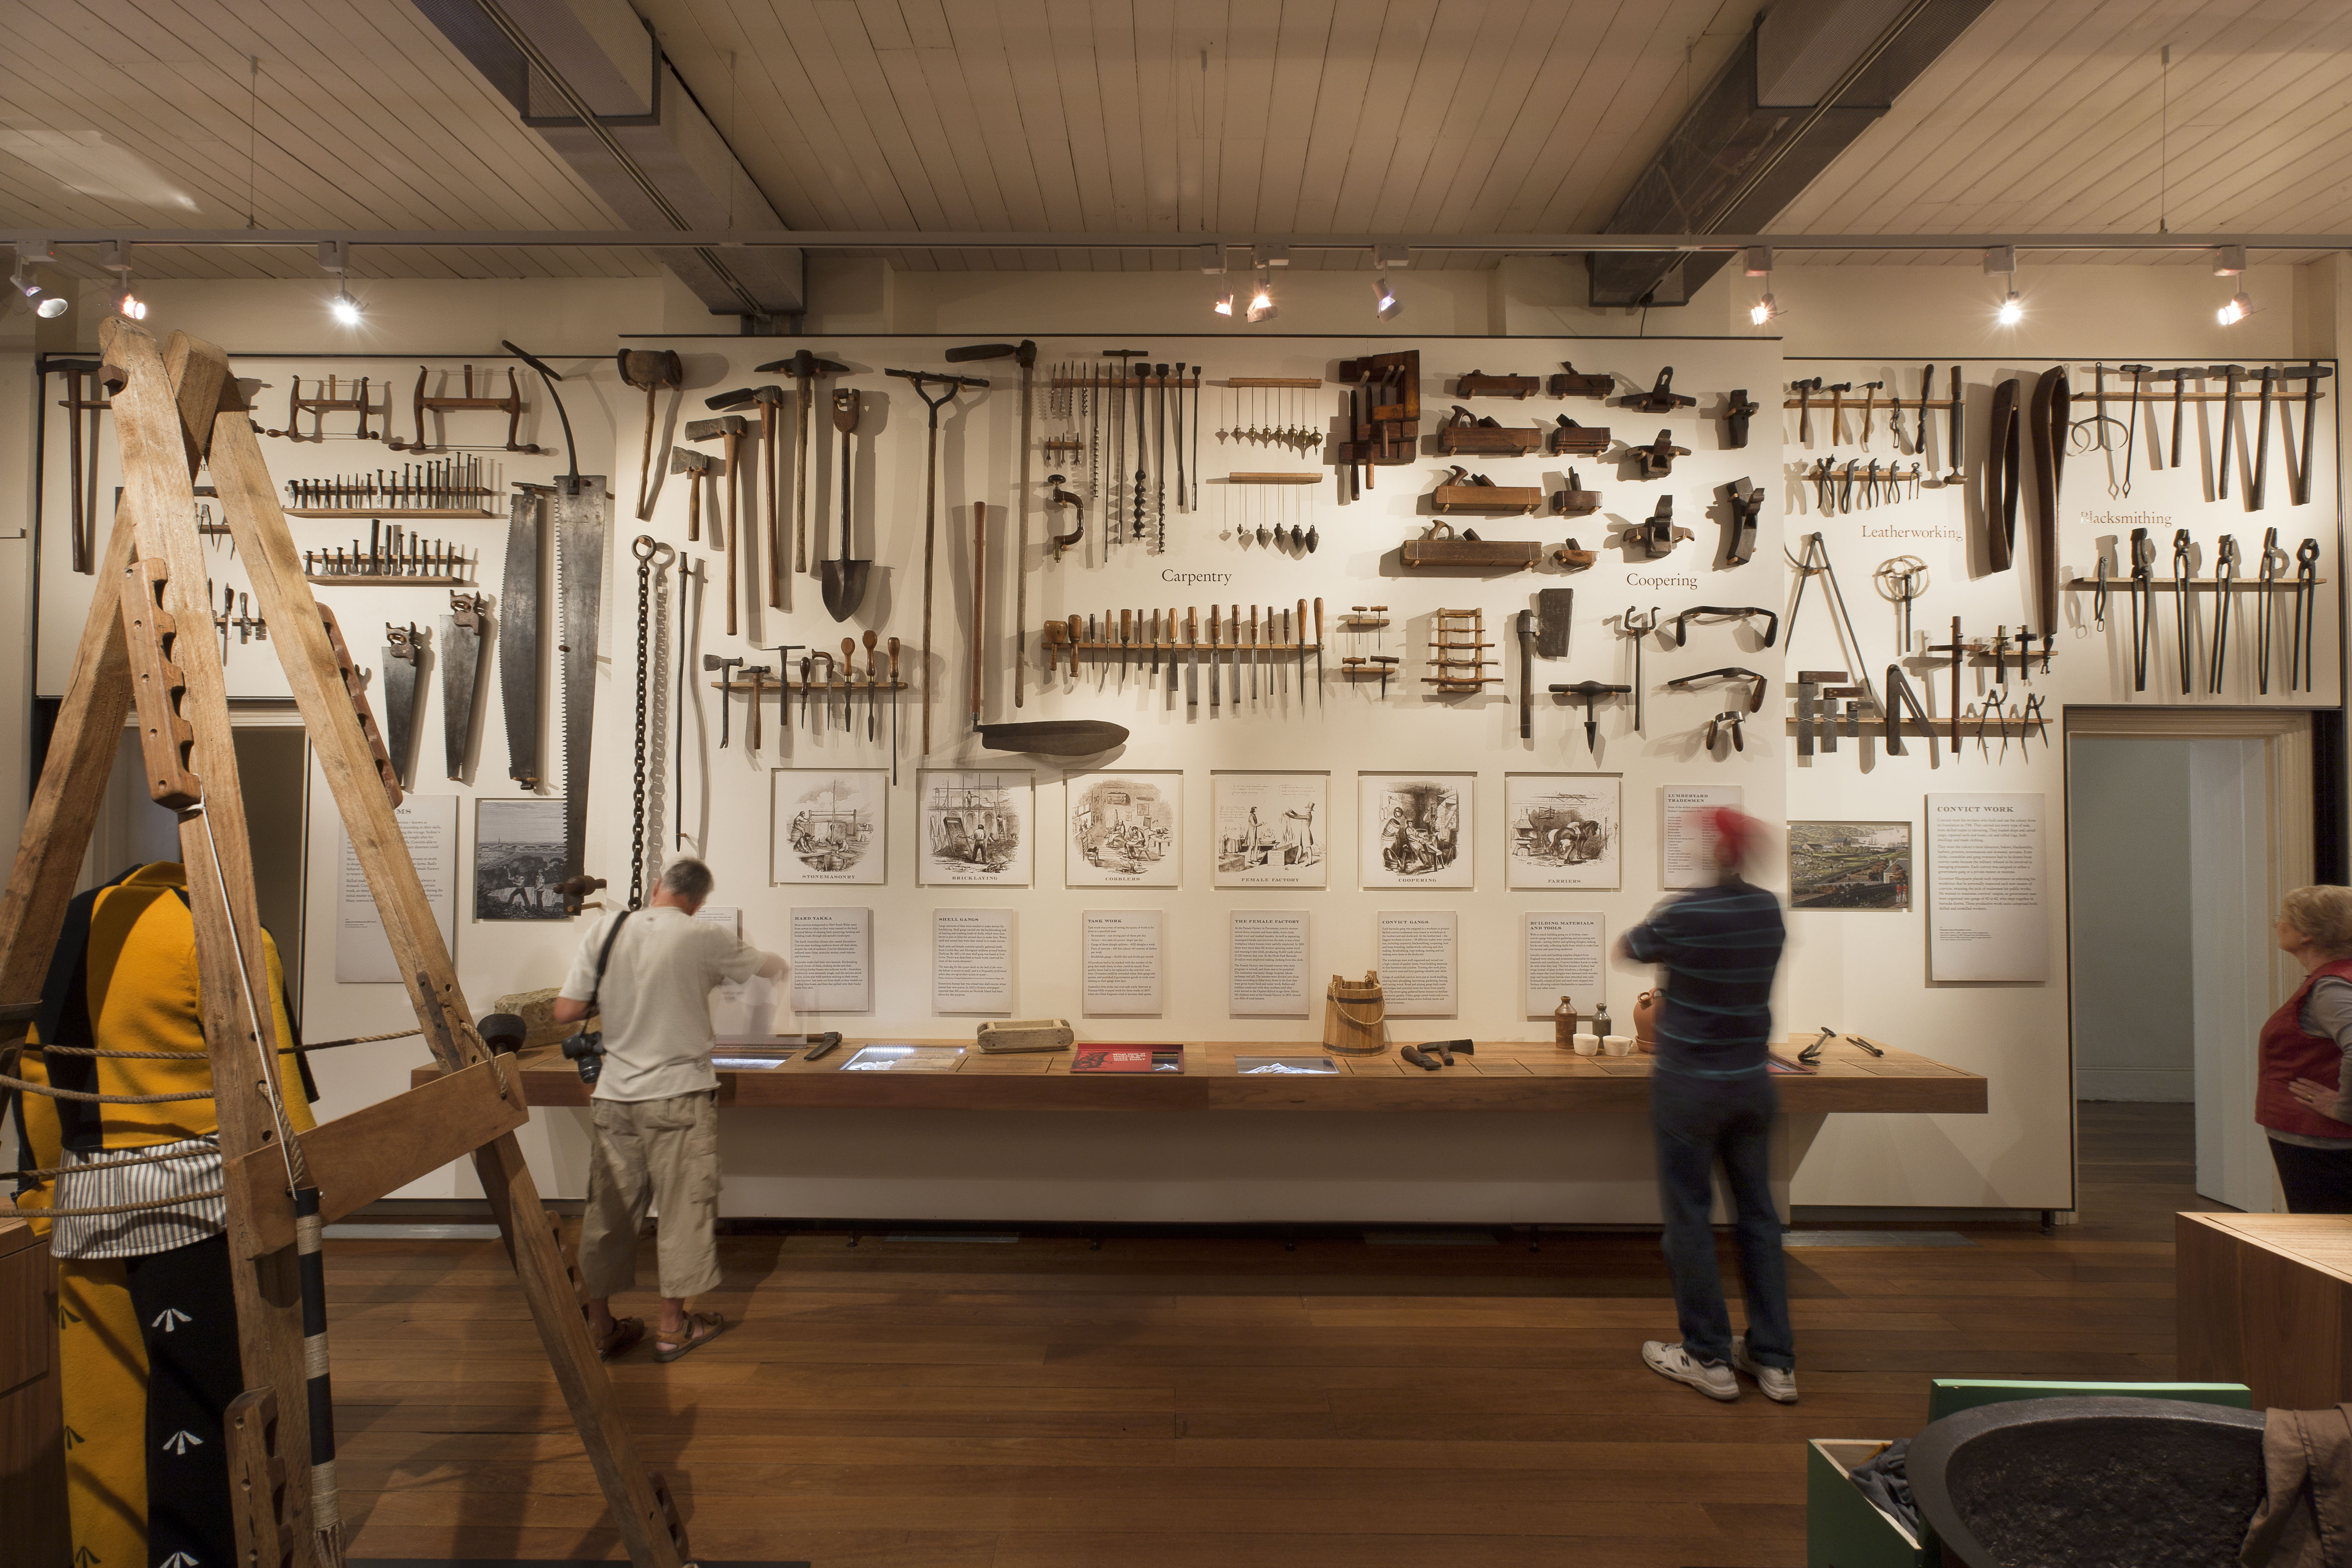 Convict Carpentry And Building Tools On Display In The